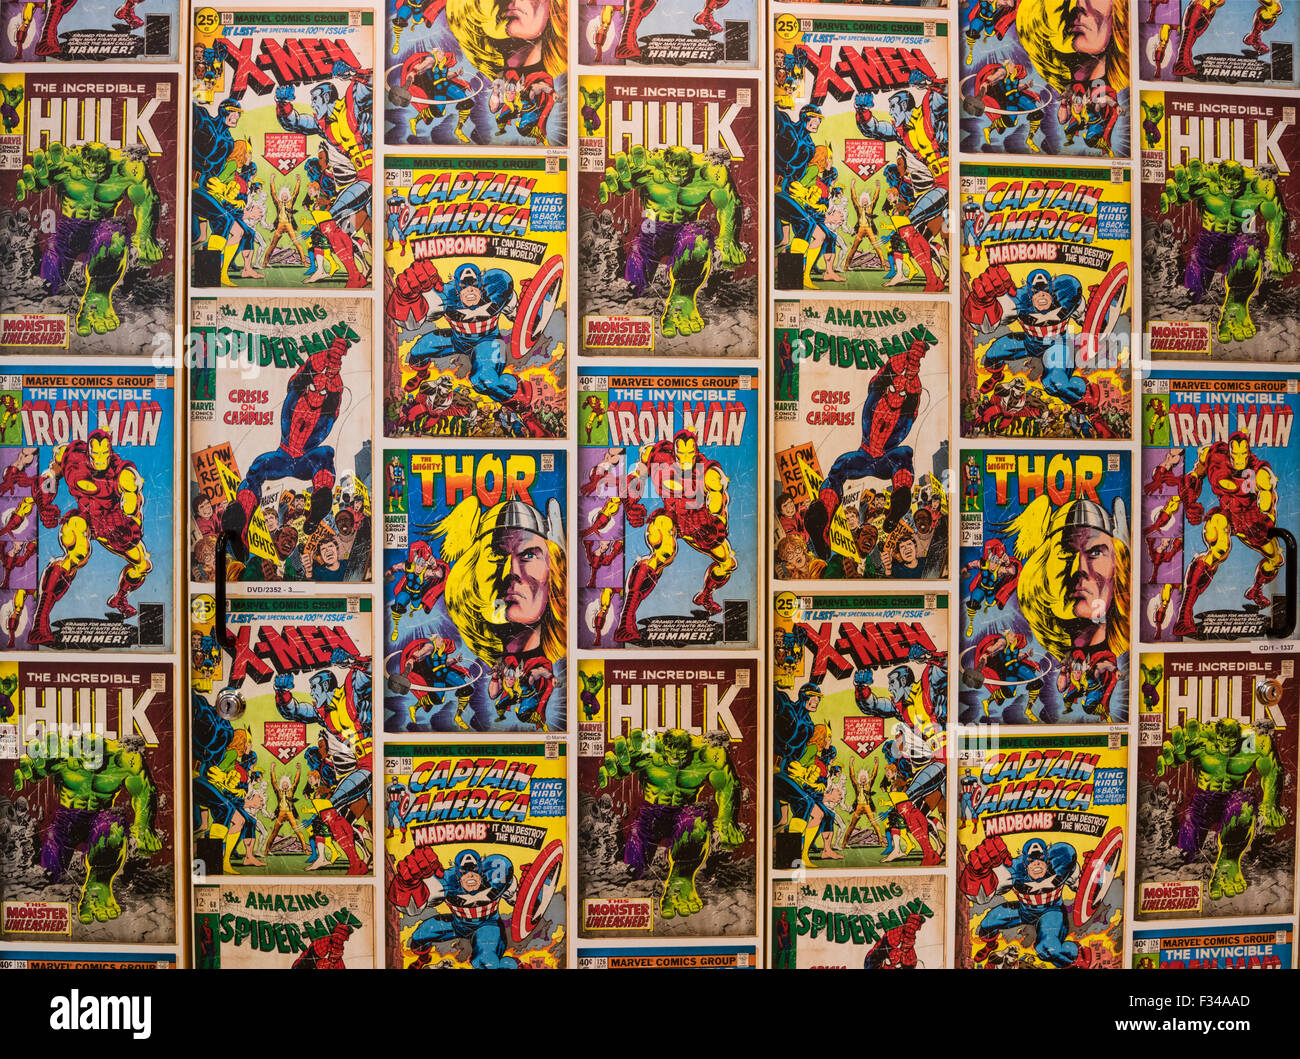 Wallpaper display created from covers of Marvel Comics featuring Marvel Comic super heroes. - Stock Image